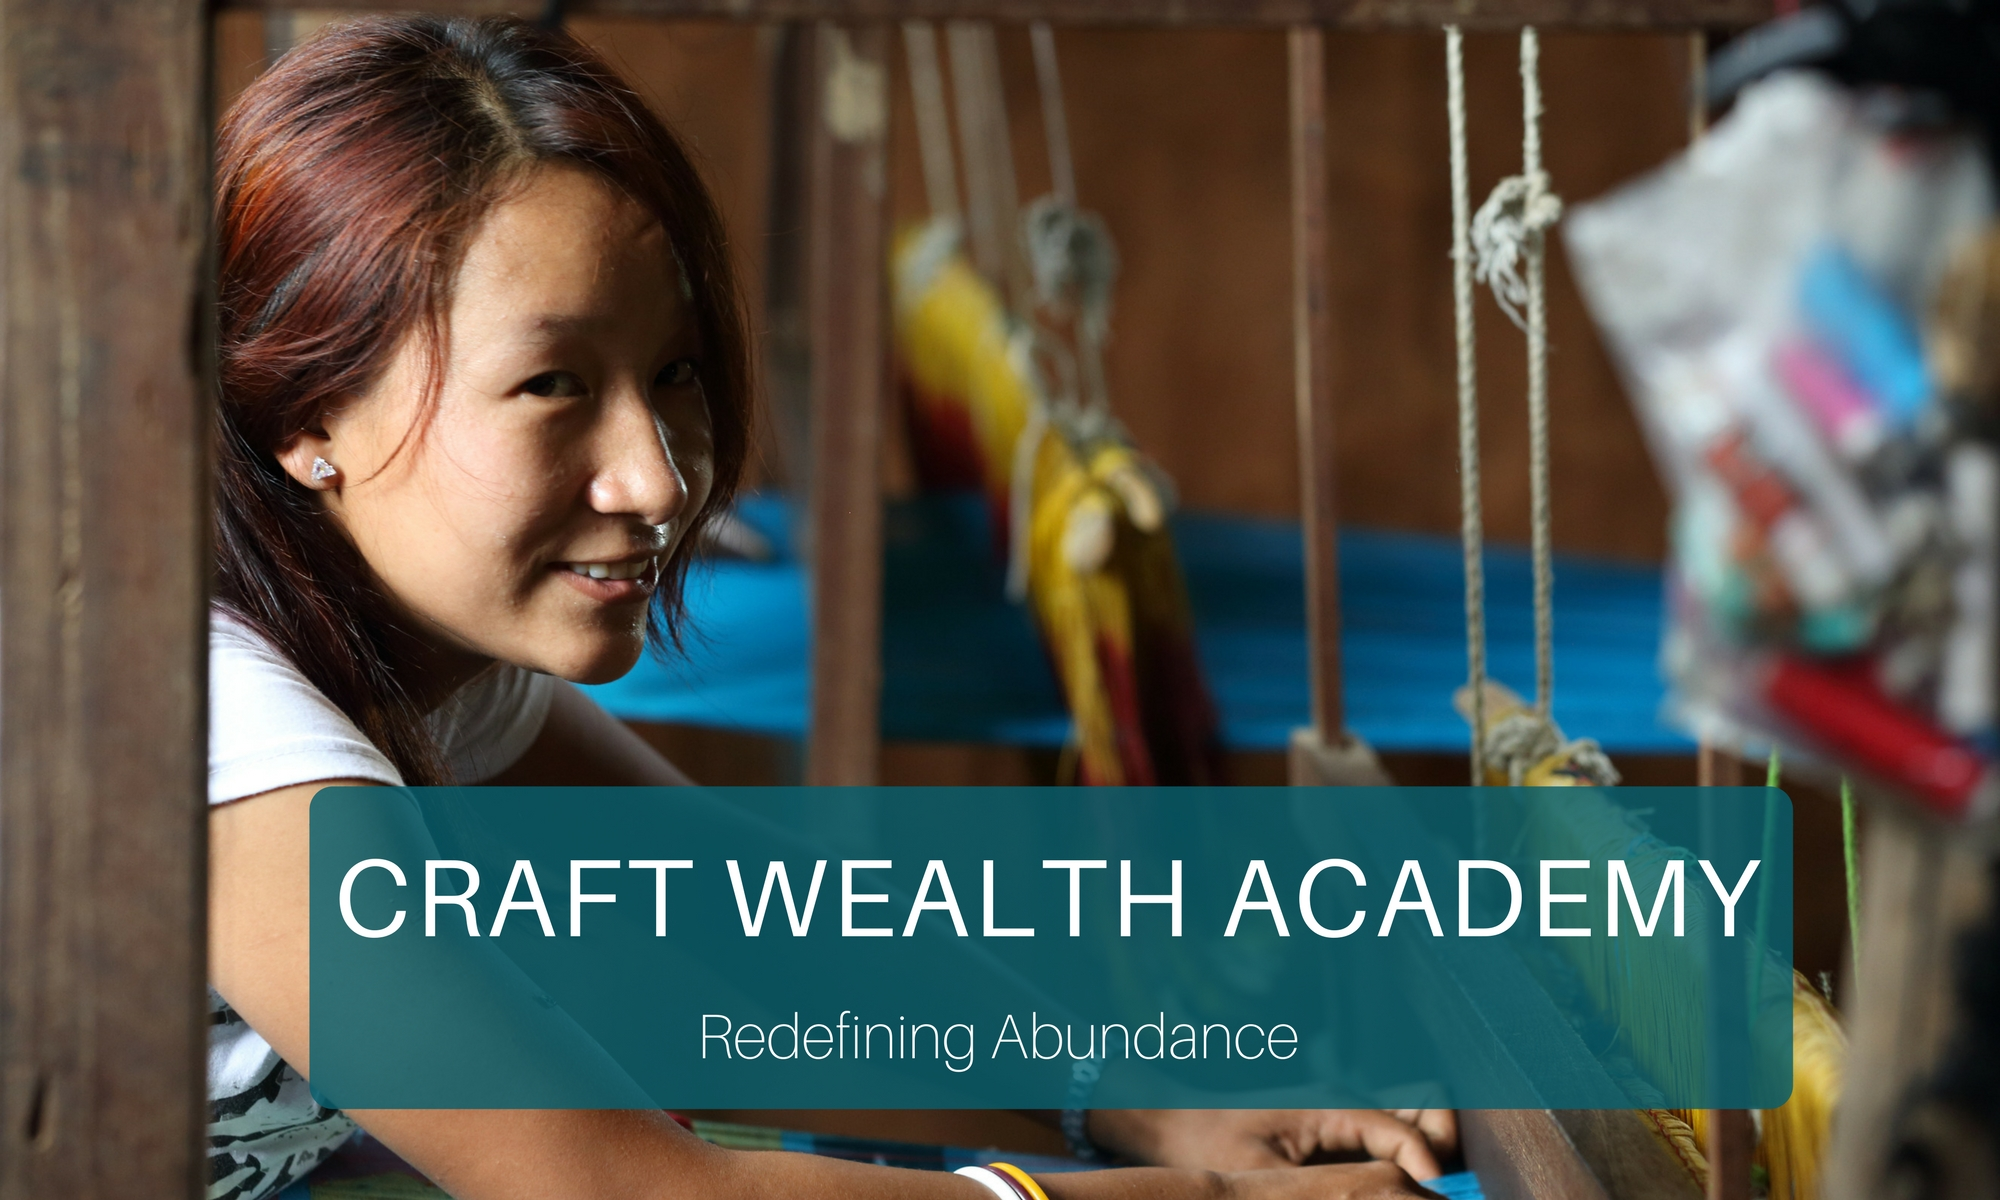 Craft Wealth Academy